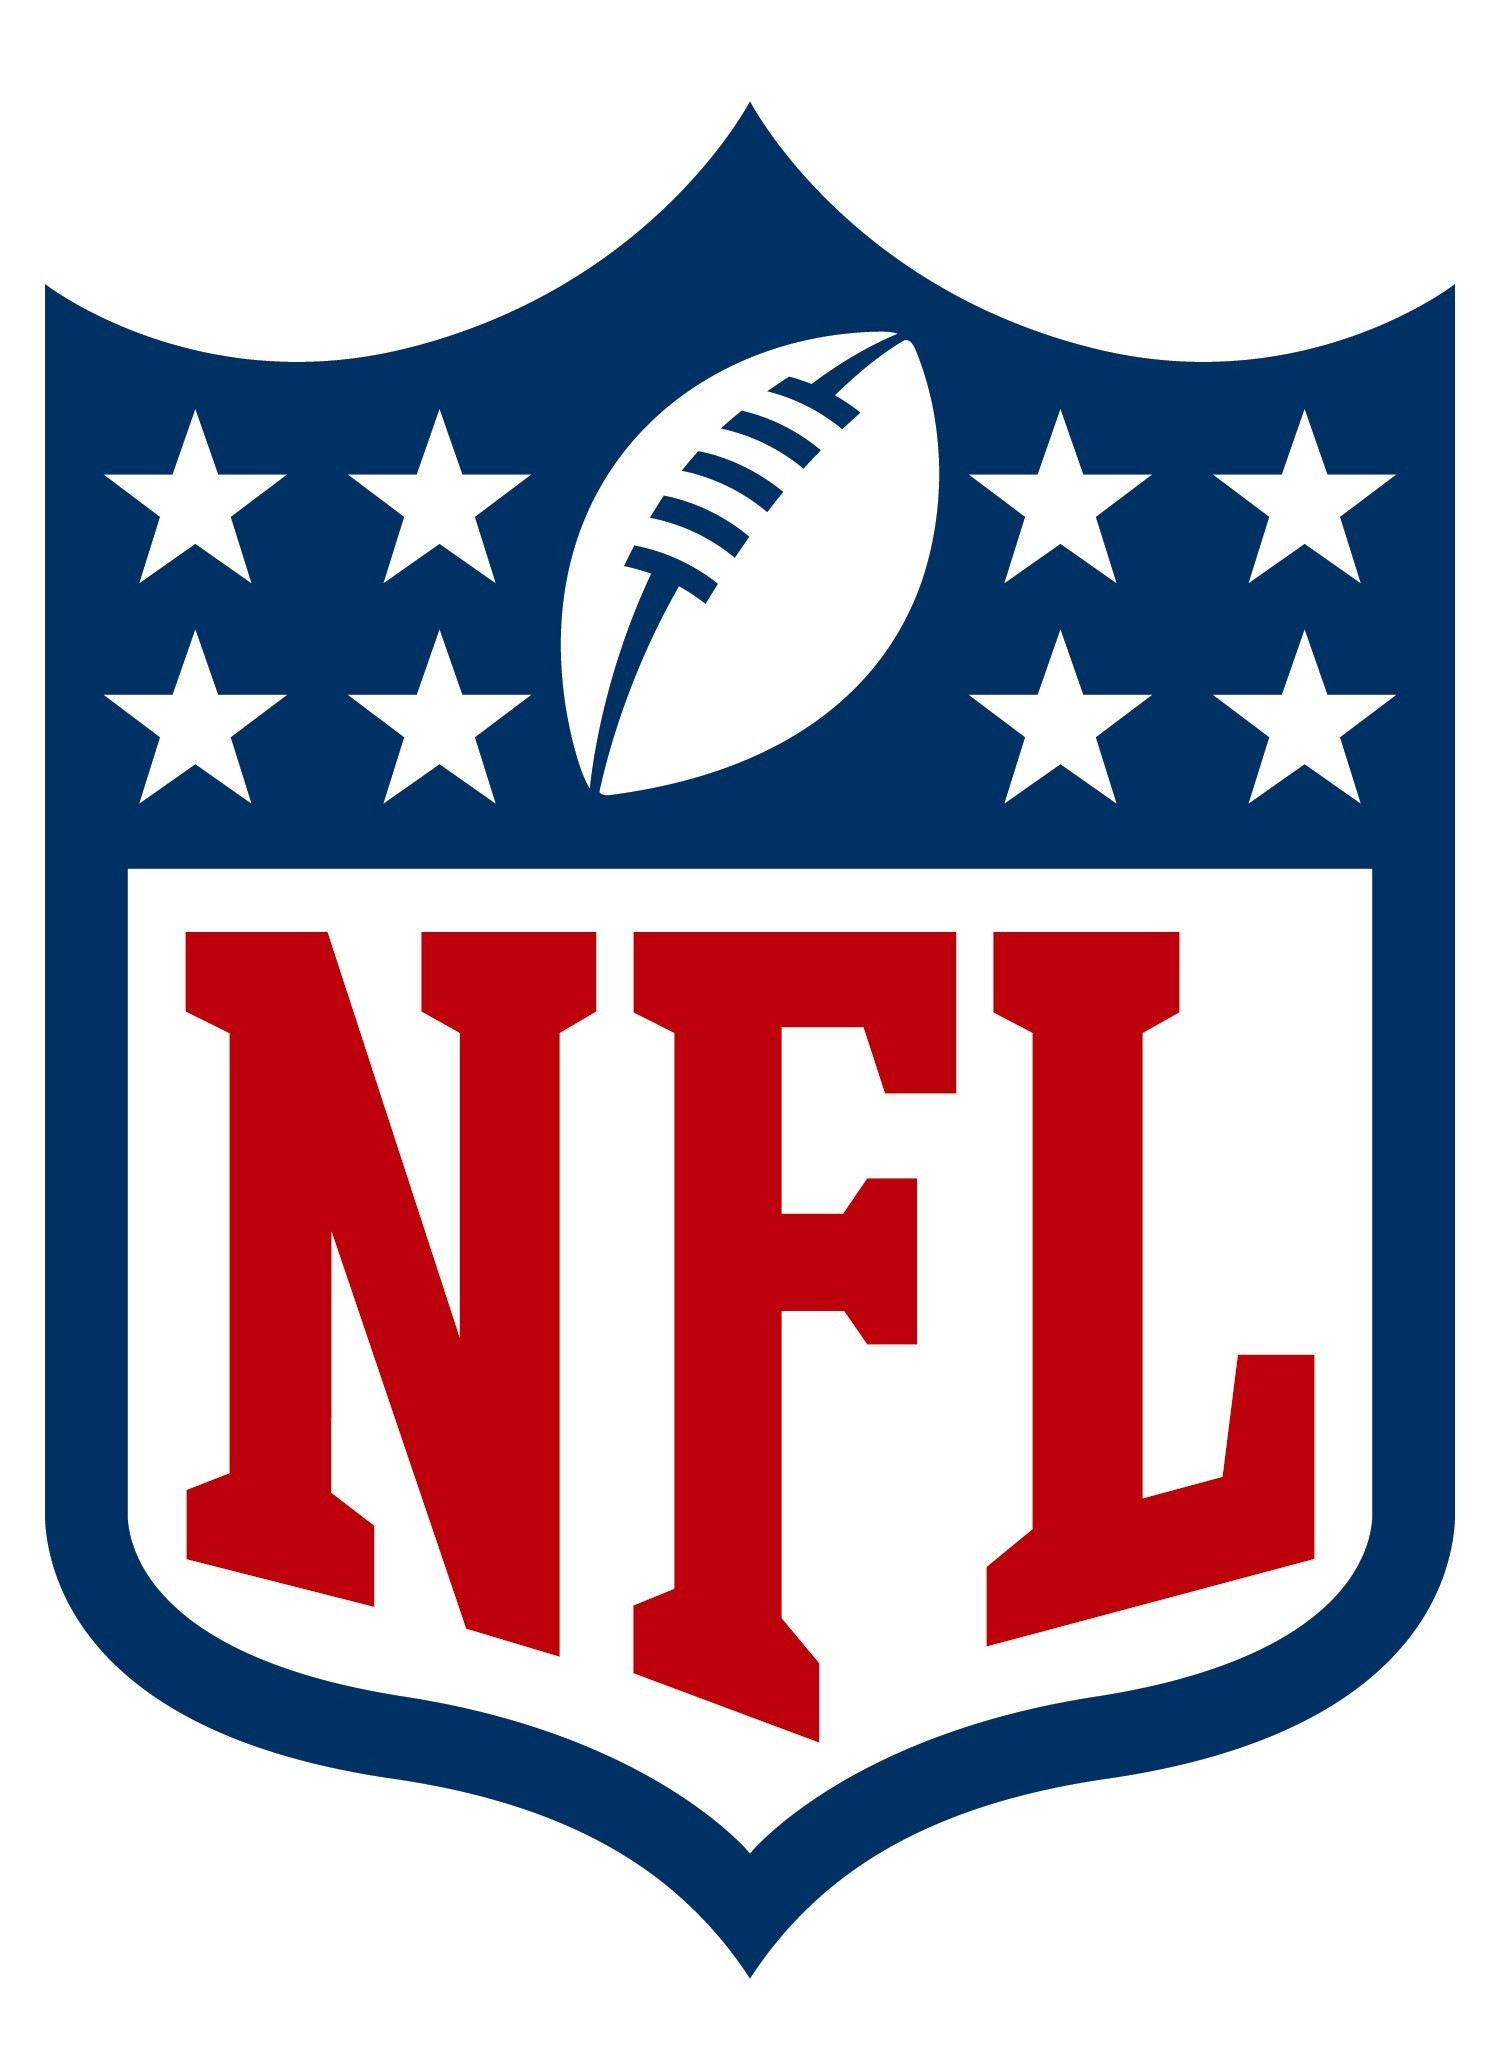 nfl logos Company HD Wallpaper